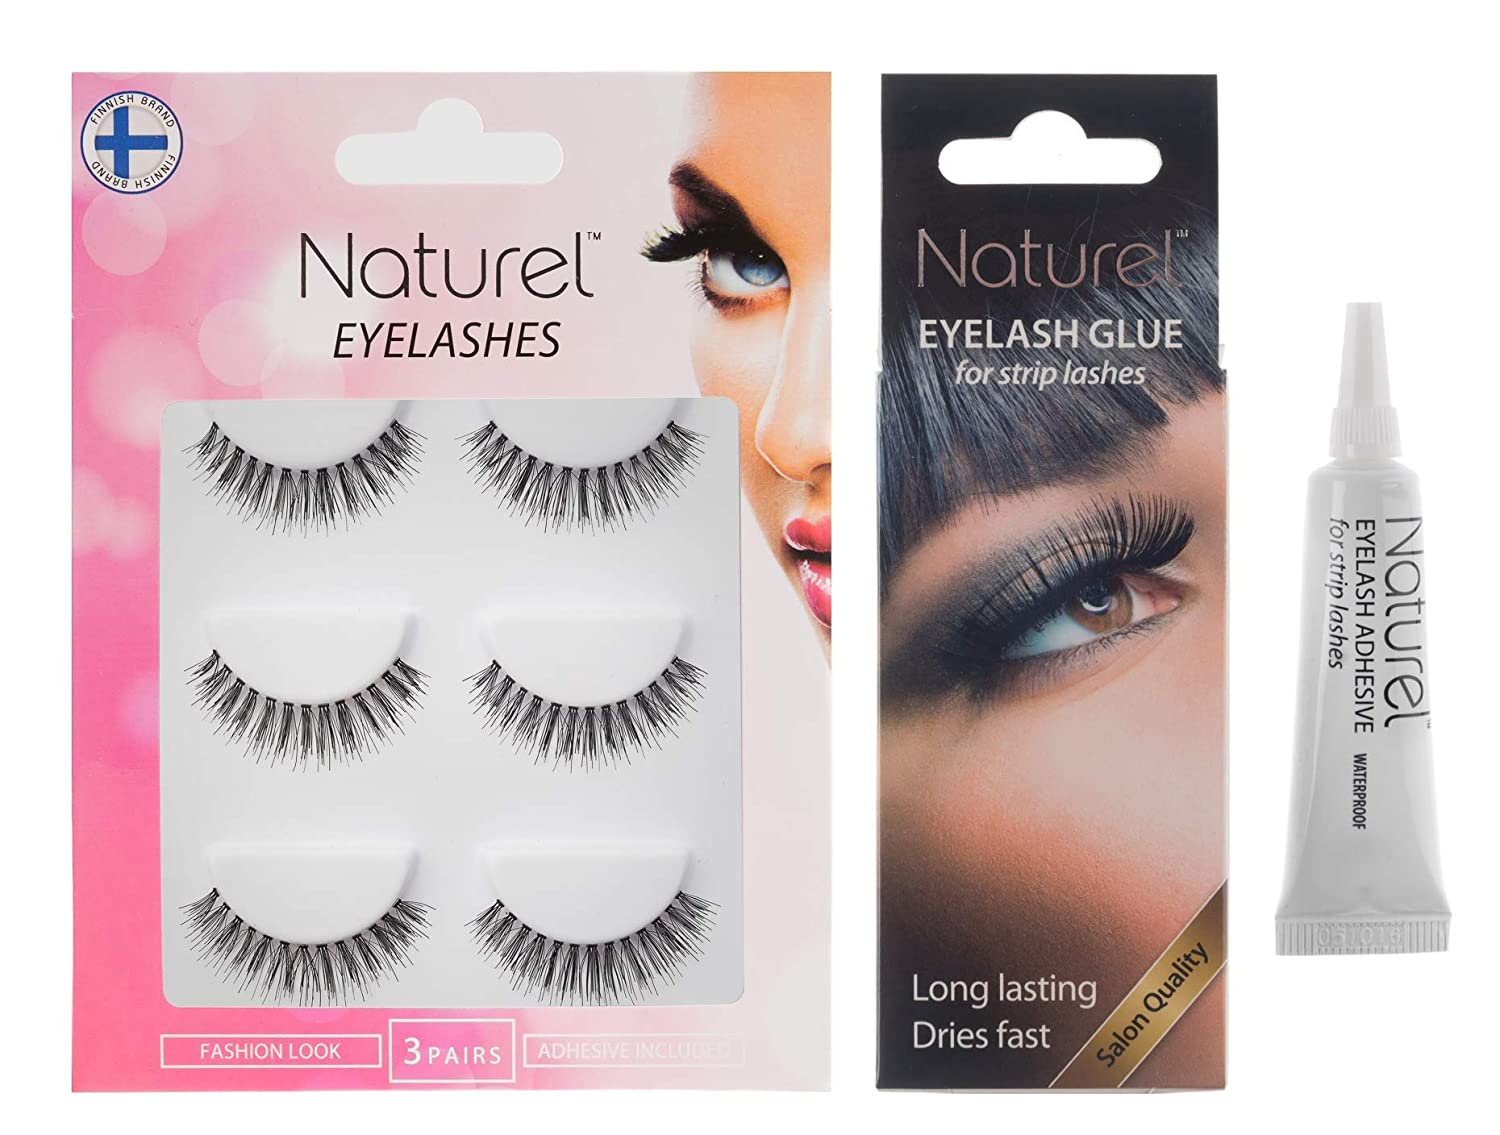 027c94b6479 Amazon.com : Fake eyelashes set with glue, False lashes, Eyelash adhesive,  Natural eyelashes, False eyelashes, Lightweight multipack, 3 set : Beauty